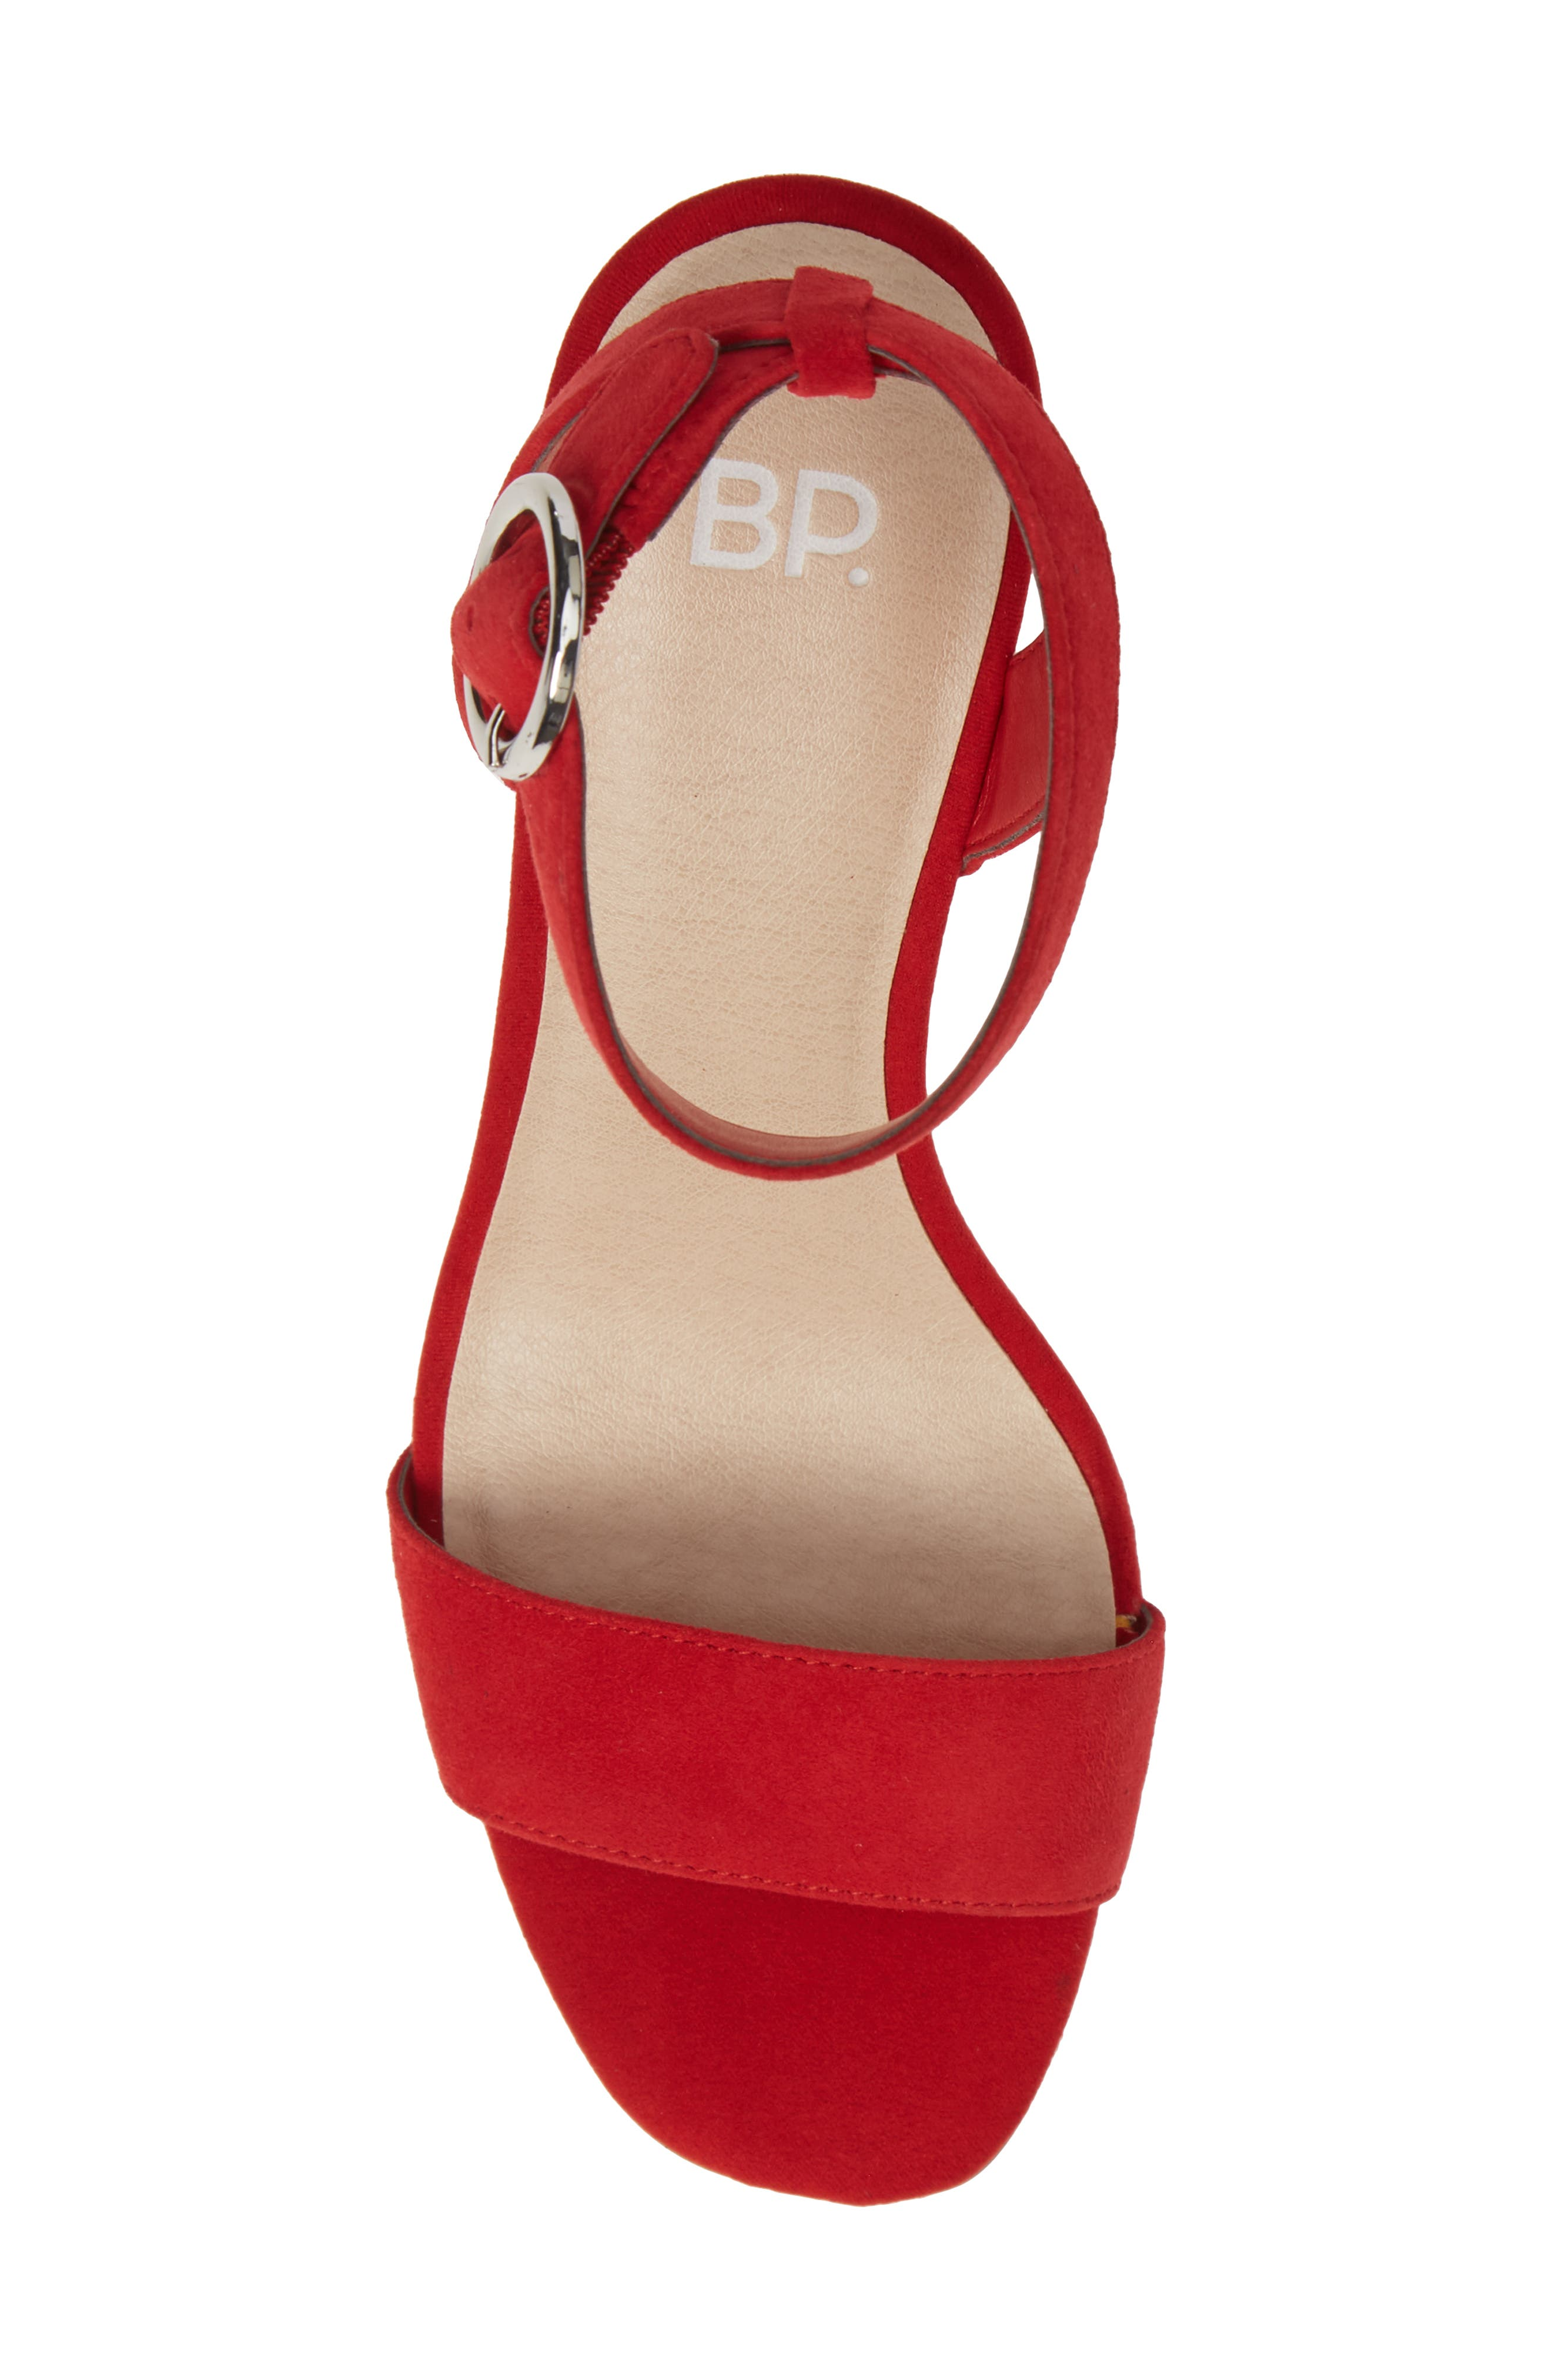 Cleo Cone Heel Sandal,                             Alternate thumbnail 5, color,                             RED SUEDE